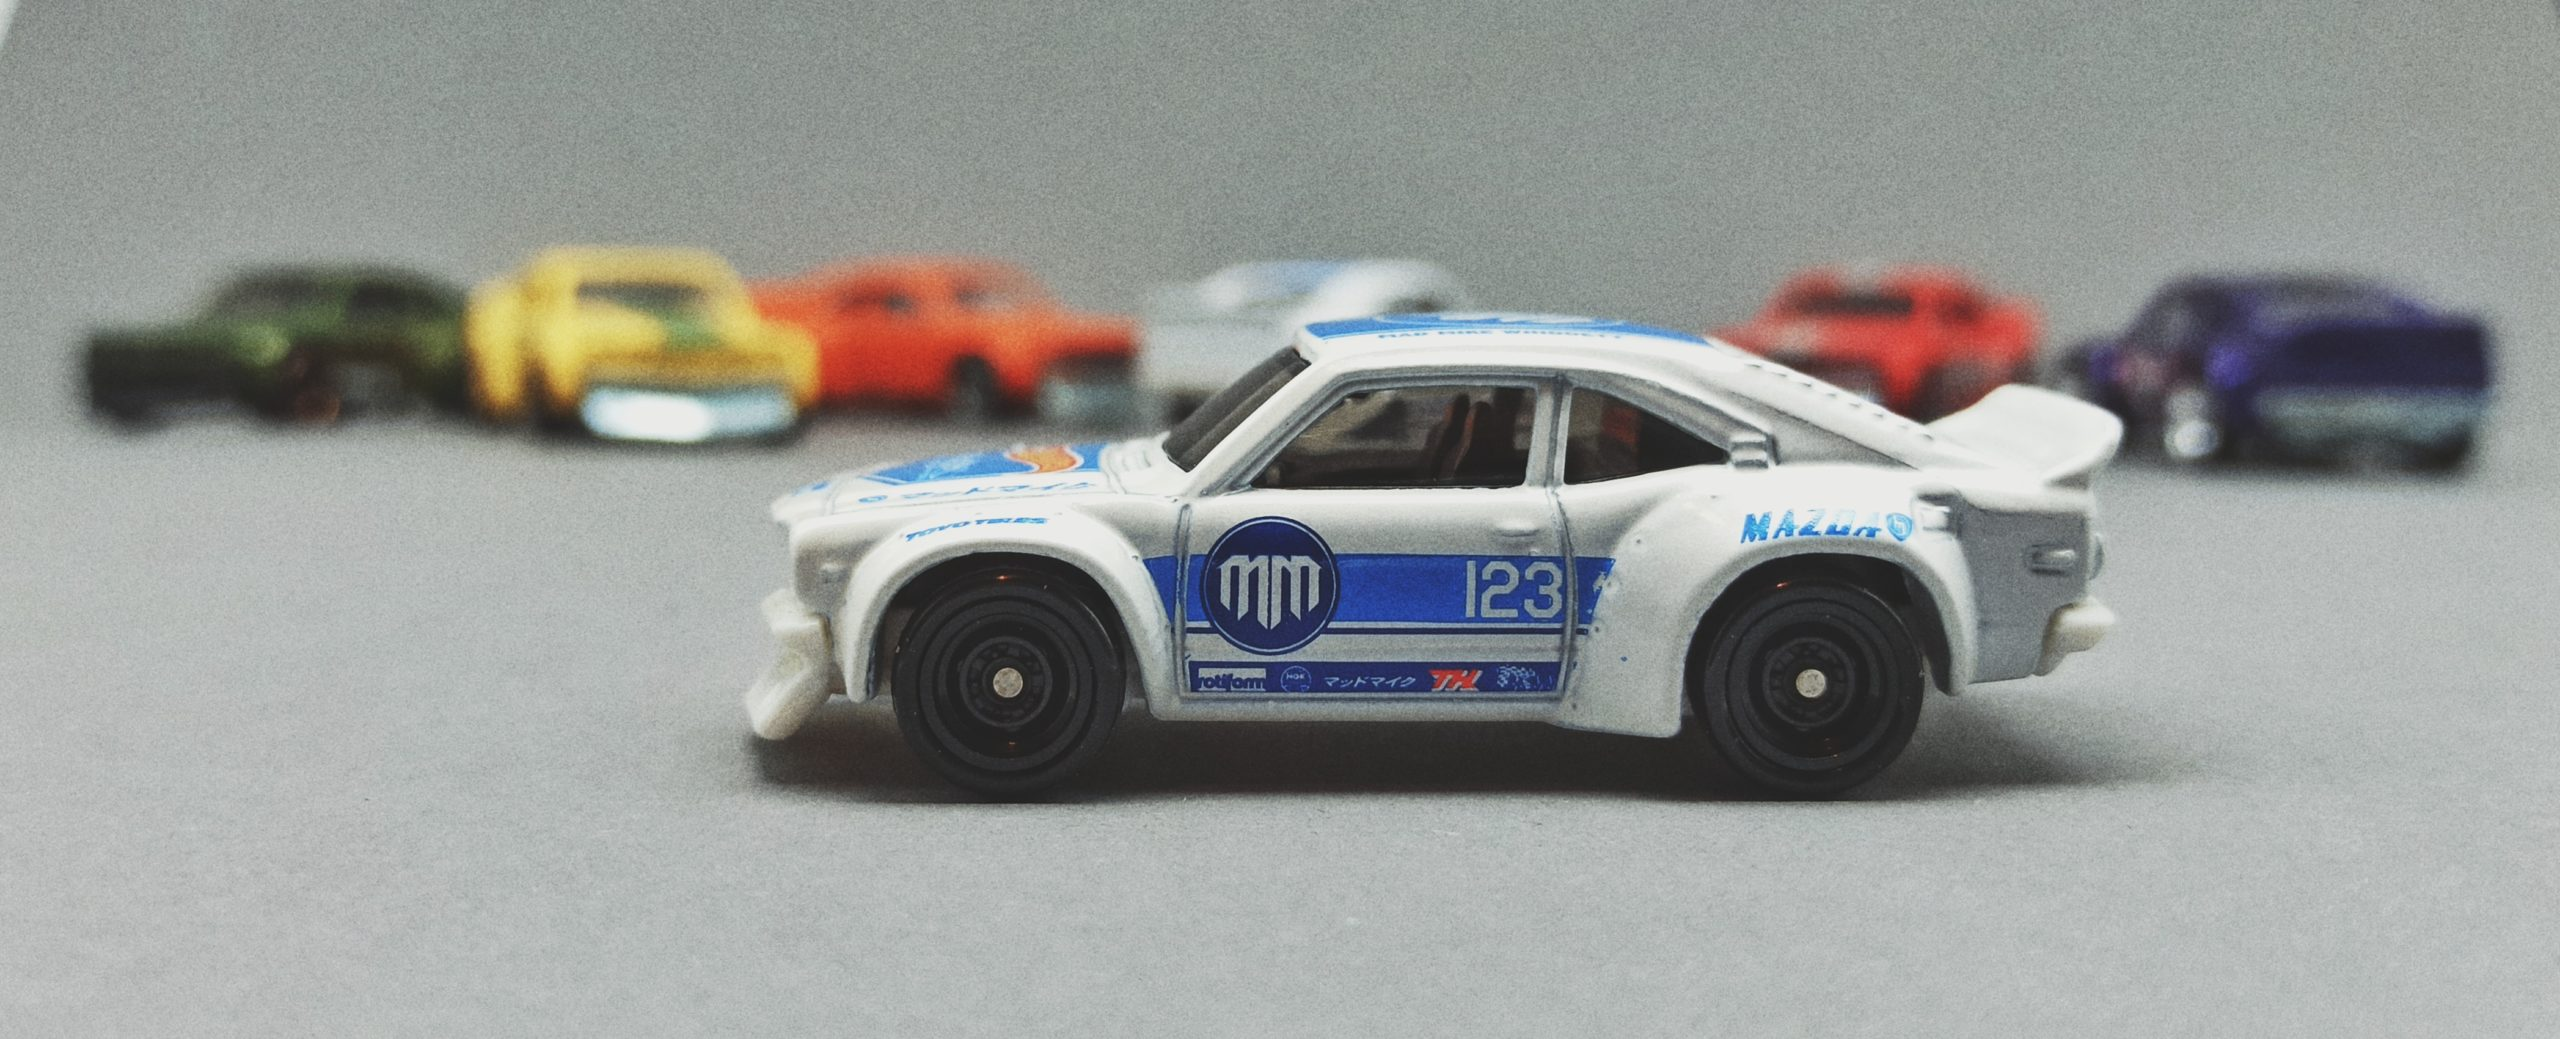 Hot Wheels Mazda RX-3 Collection 2021 (137/250) HW Drift (5/5), white (Mad Mike) (STH) (GTD00)